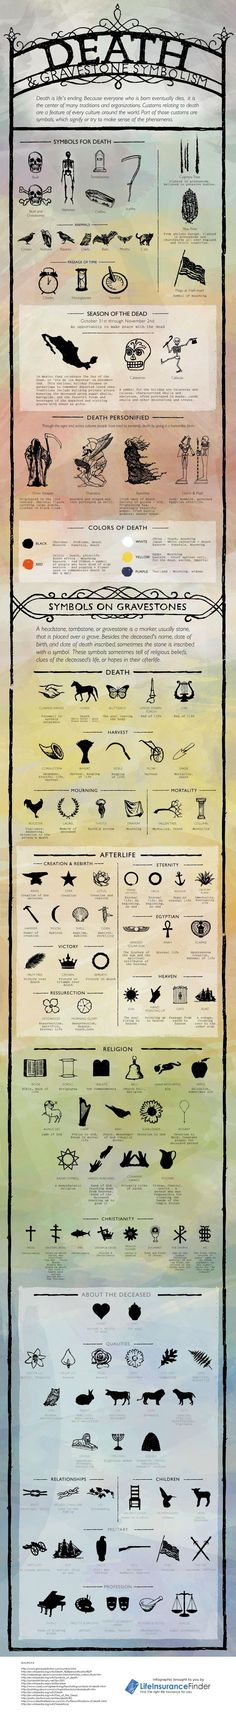 Infographic of the week: Death. Interesting if you like symbology like I do :)